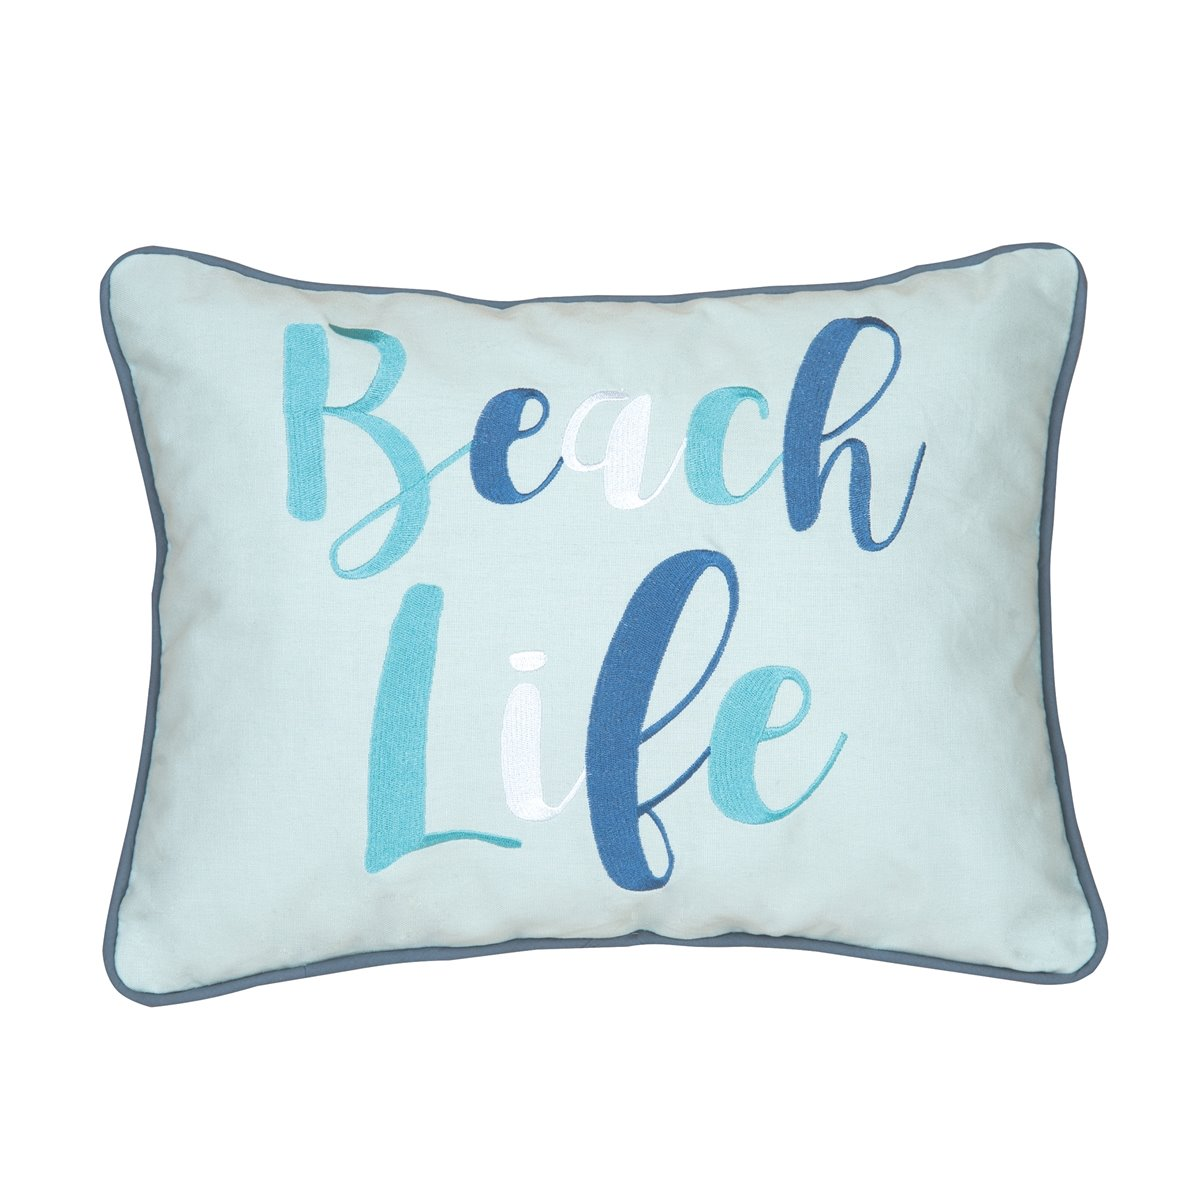 Brisbane Beach Life Multi Blue Embroidered Pillow